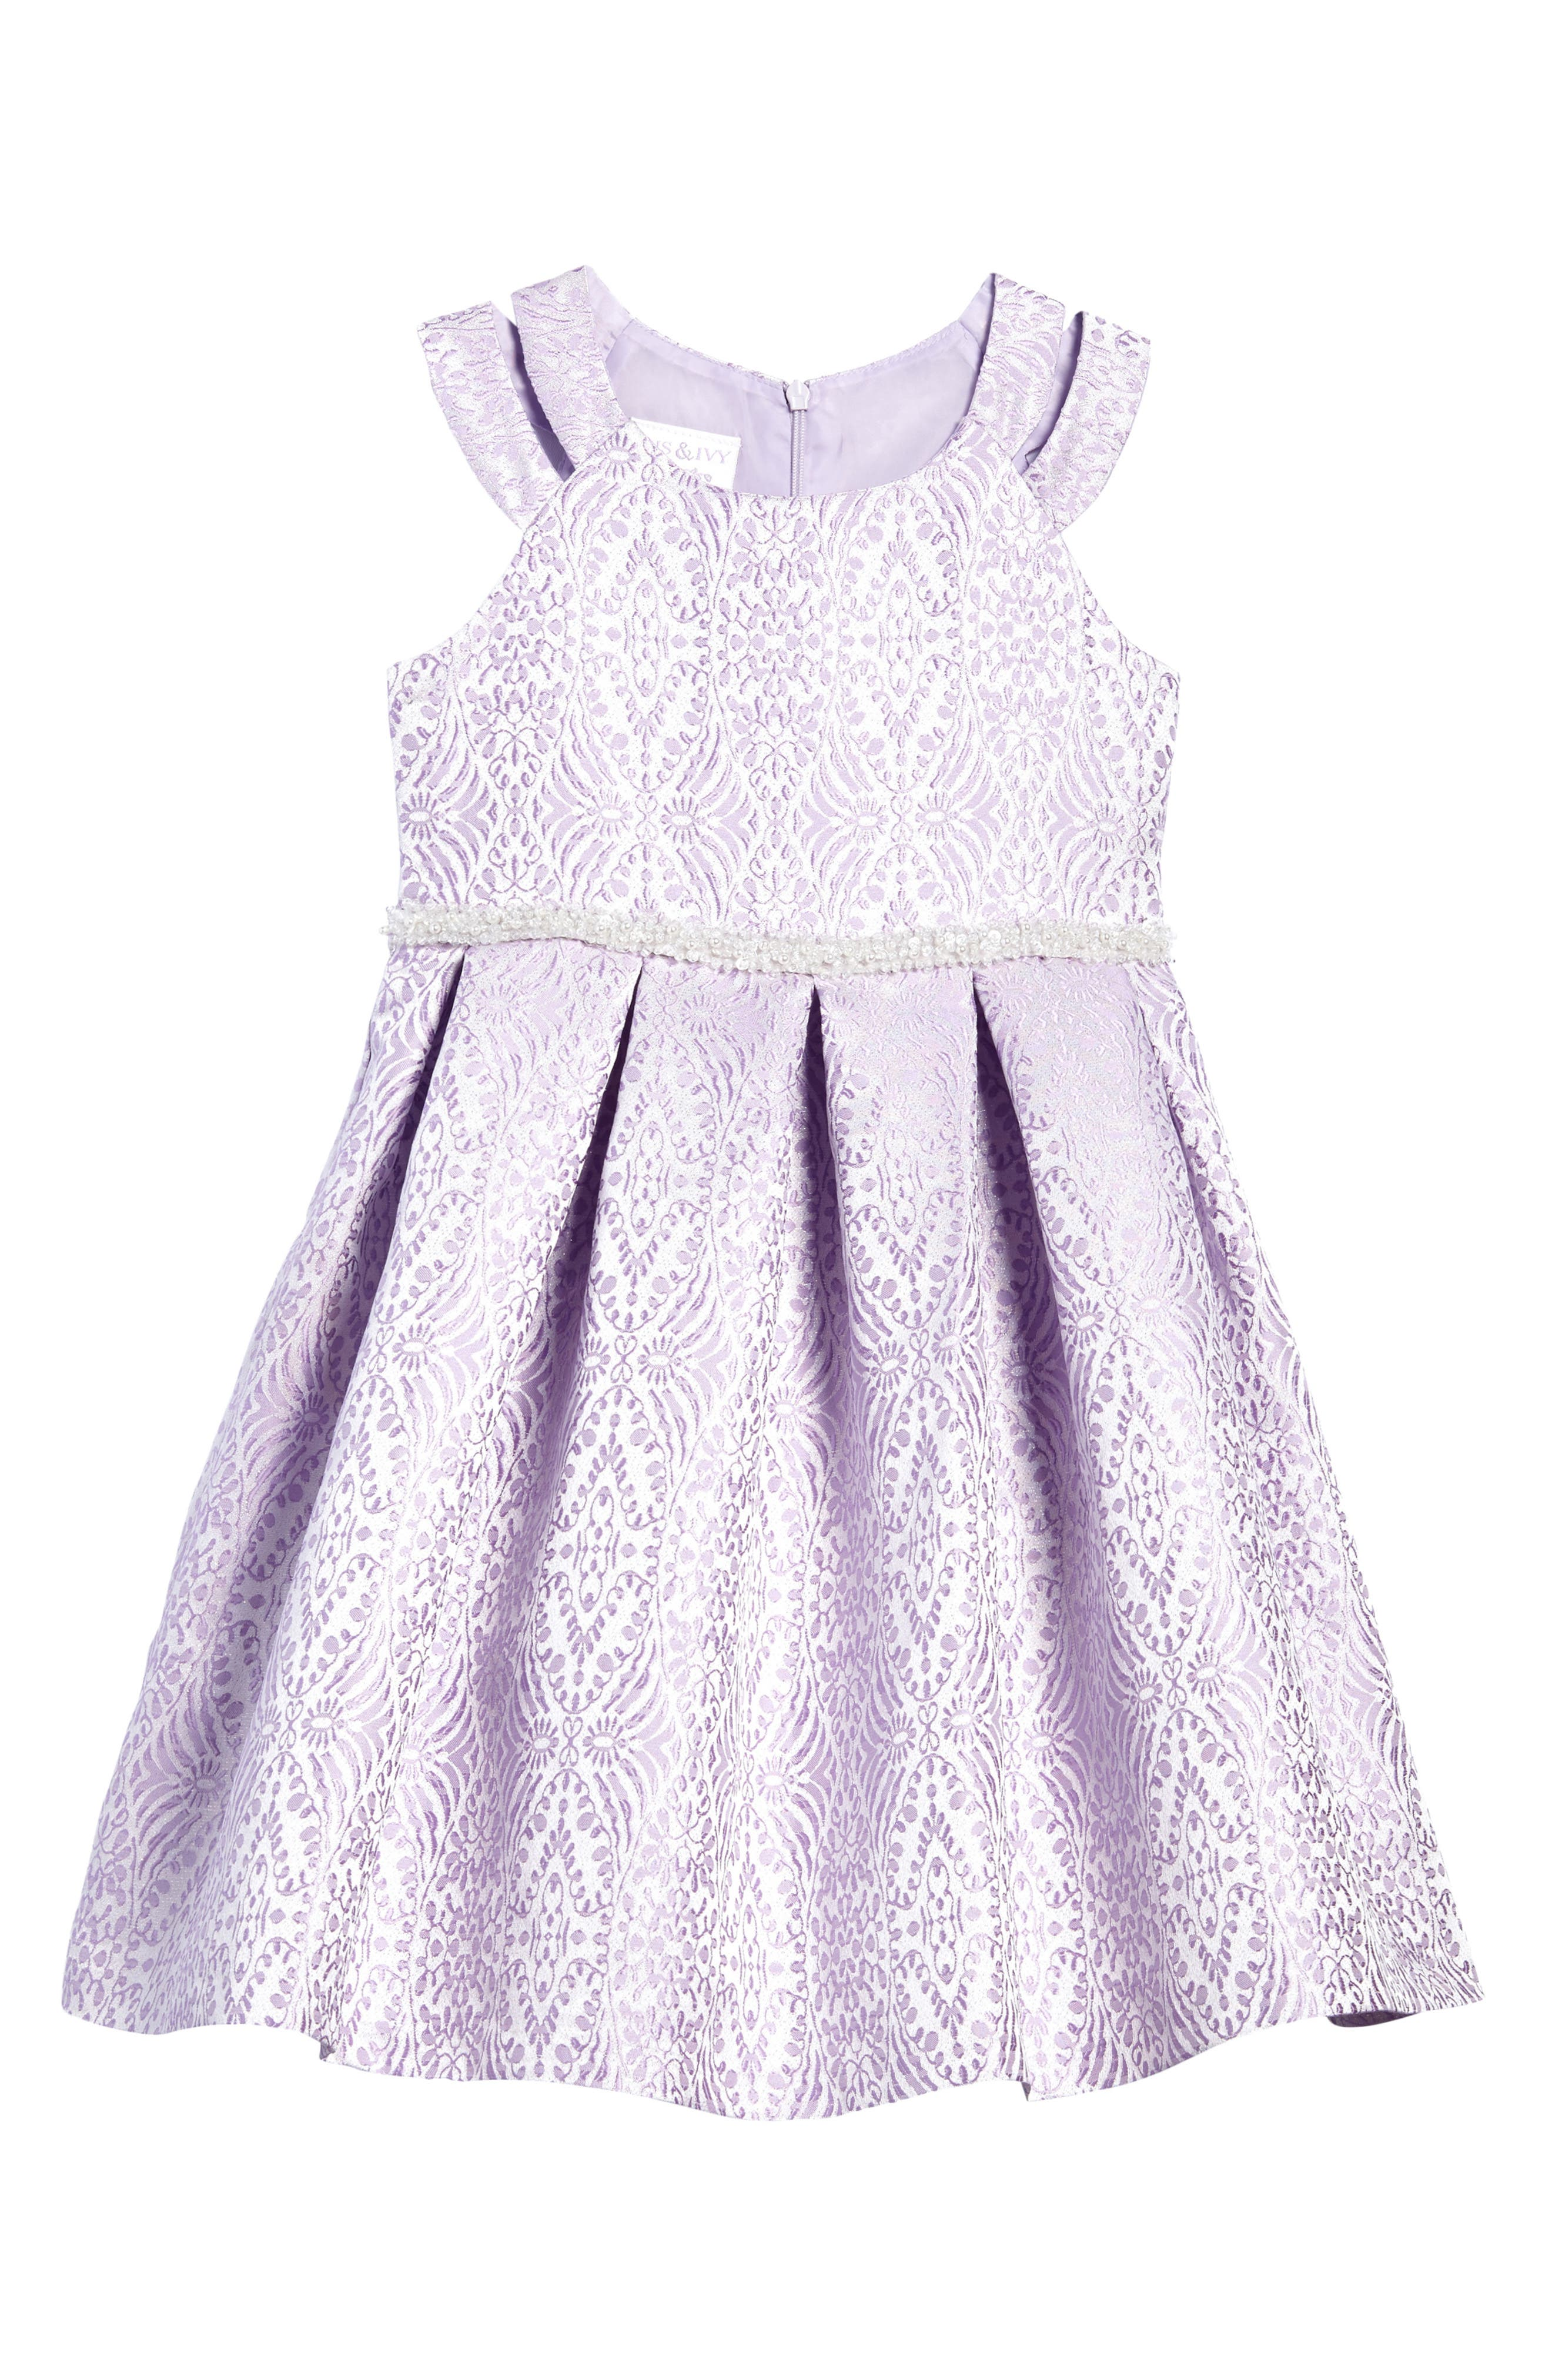 Jacquard Fit & Flare Dress,                             Main thumbnail 1, color,                             Lavendar